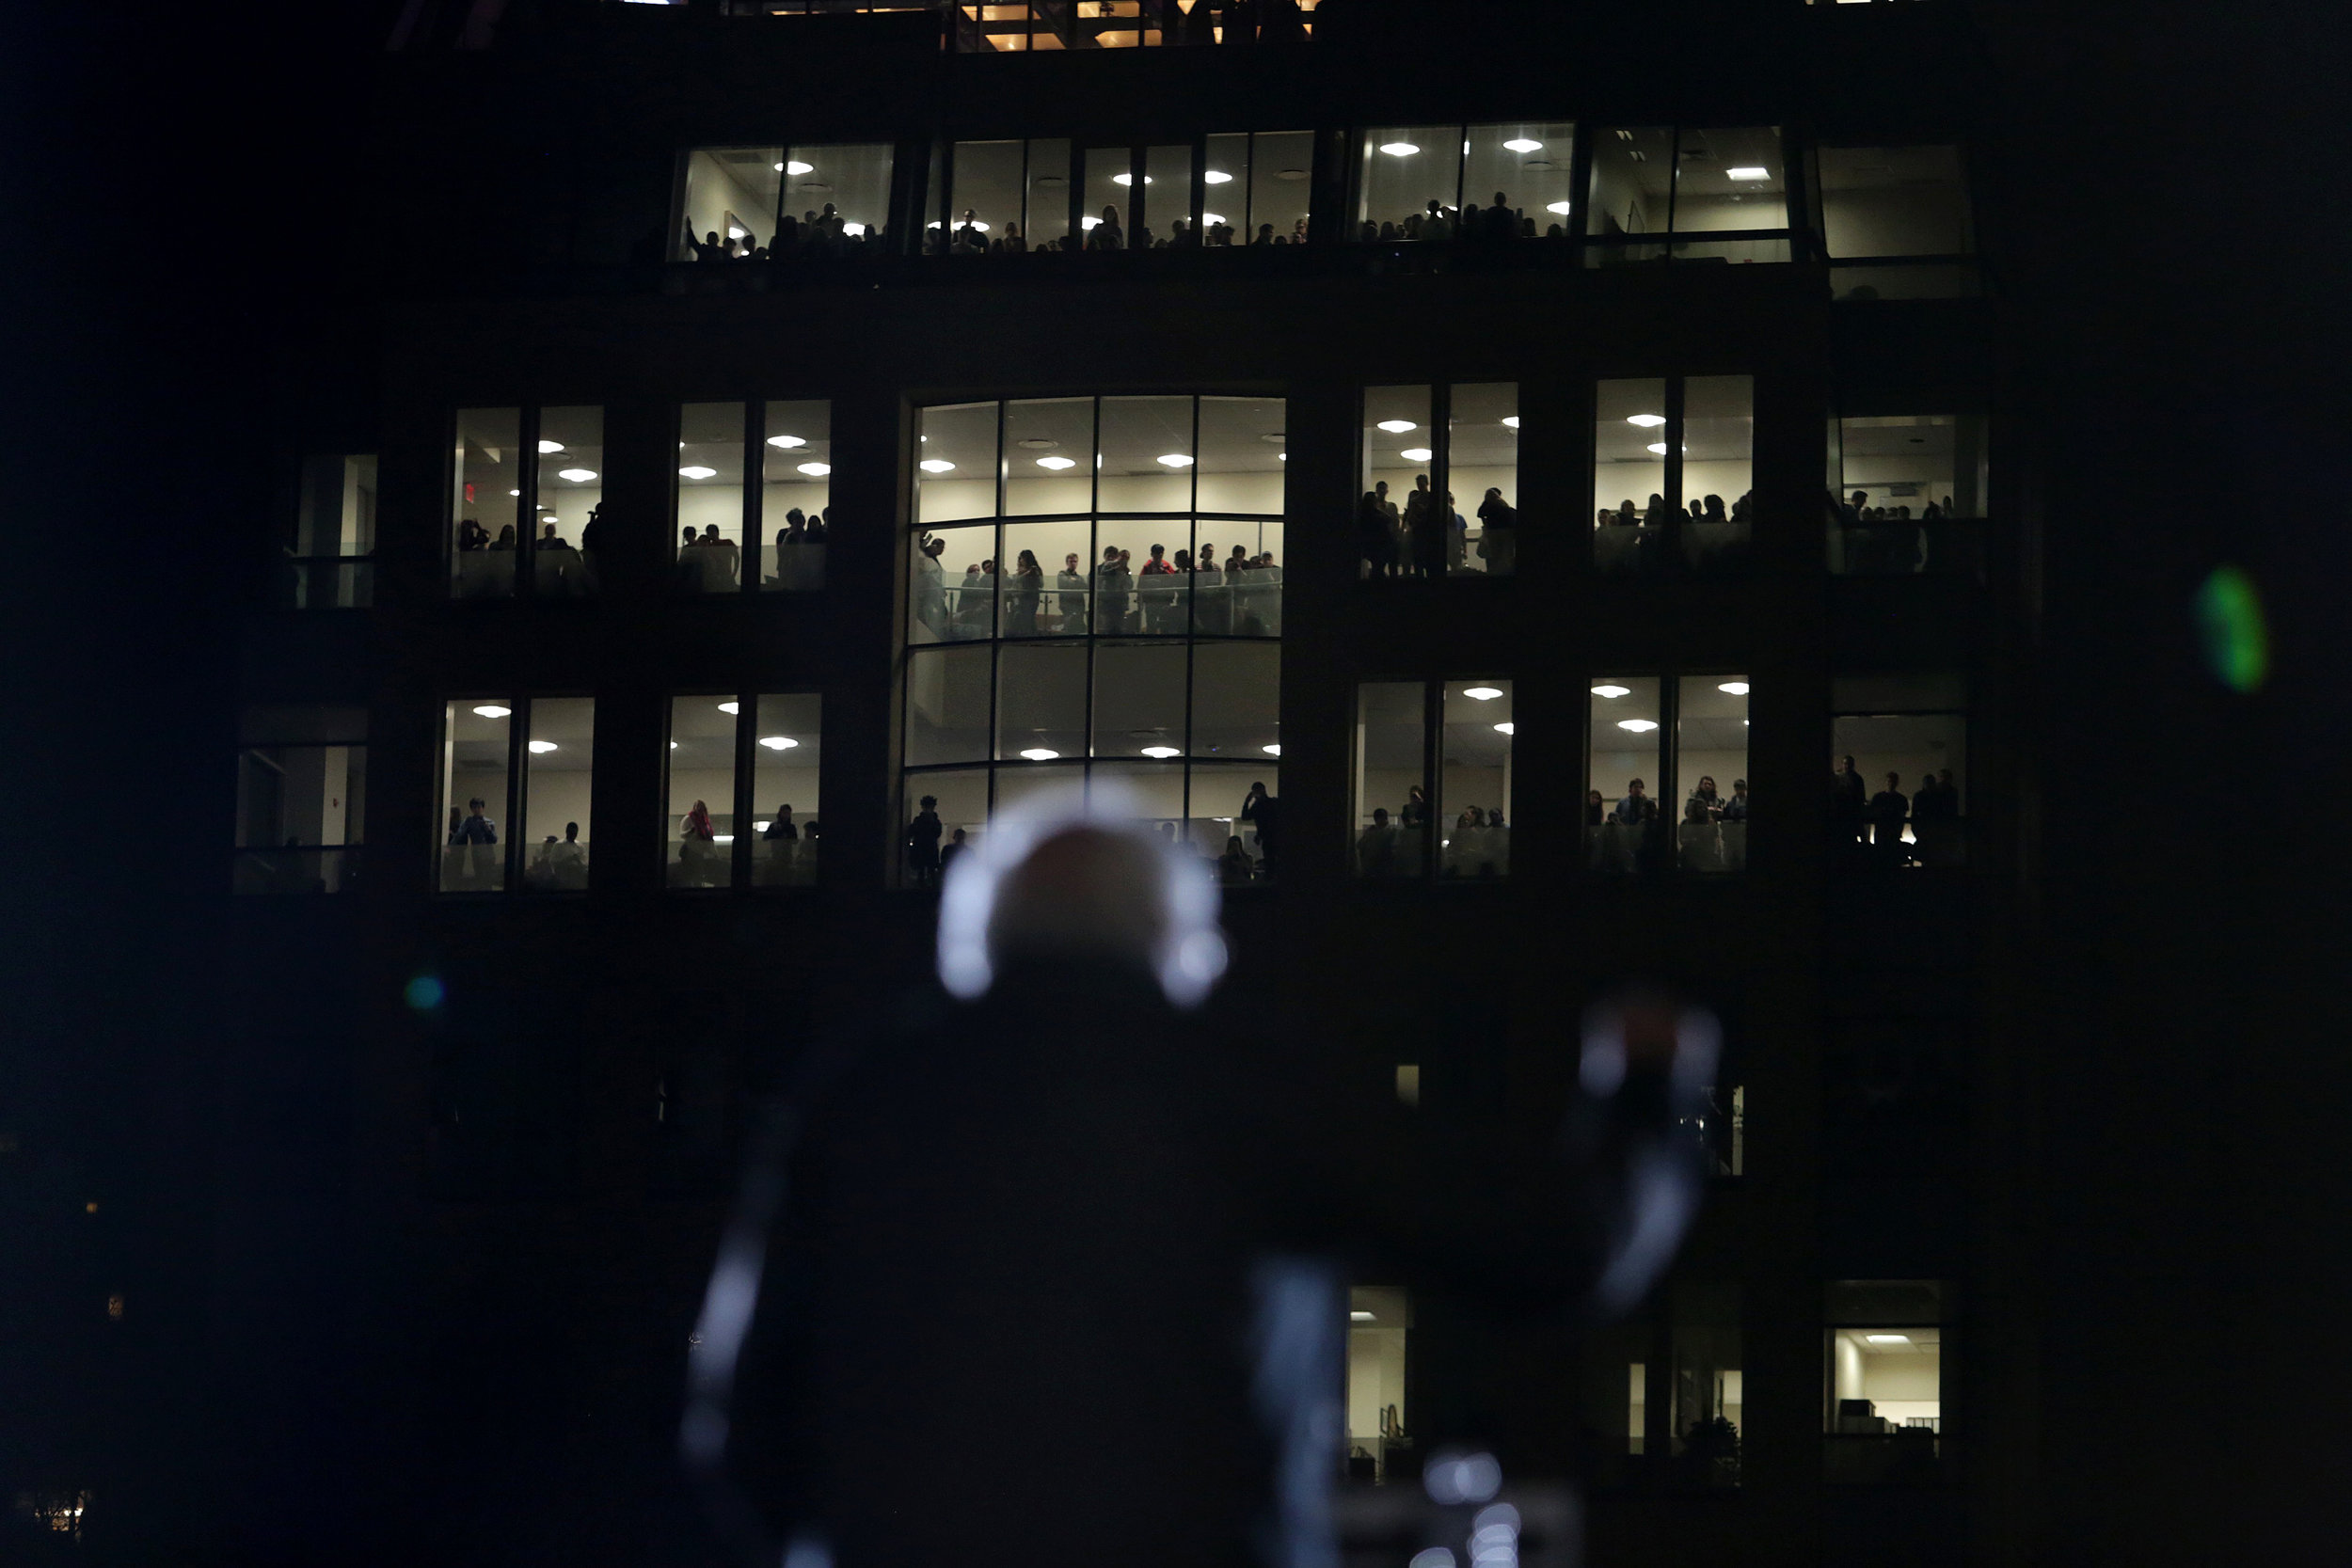 From behind the stage, you could see students in a building at NYU watching over the event.